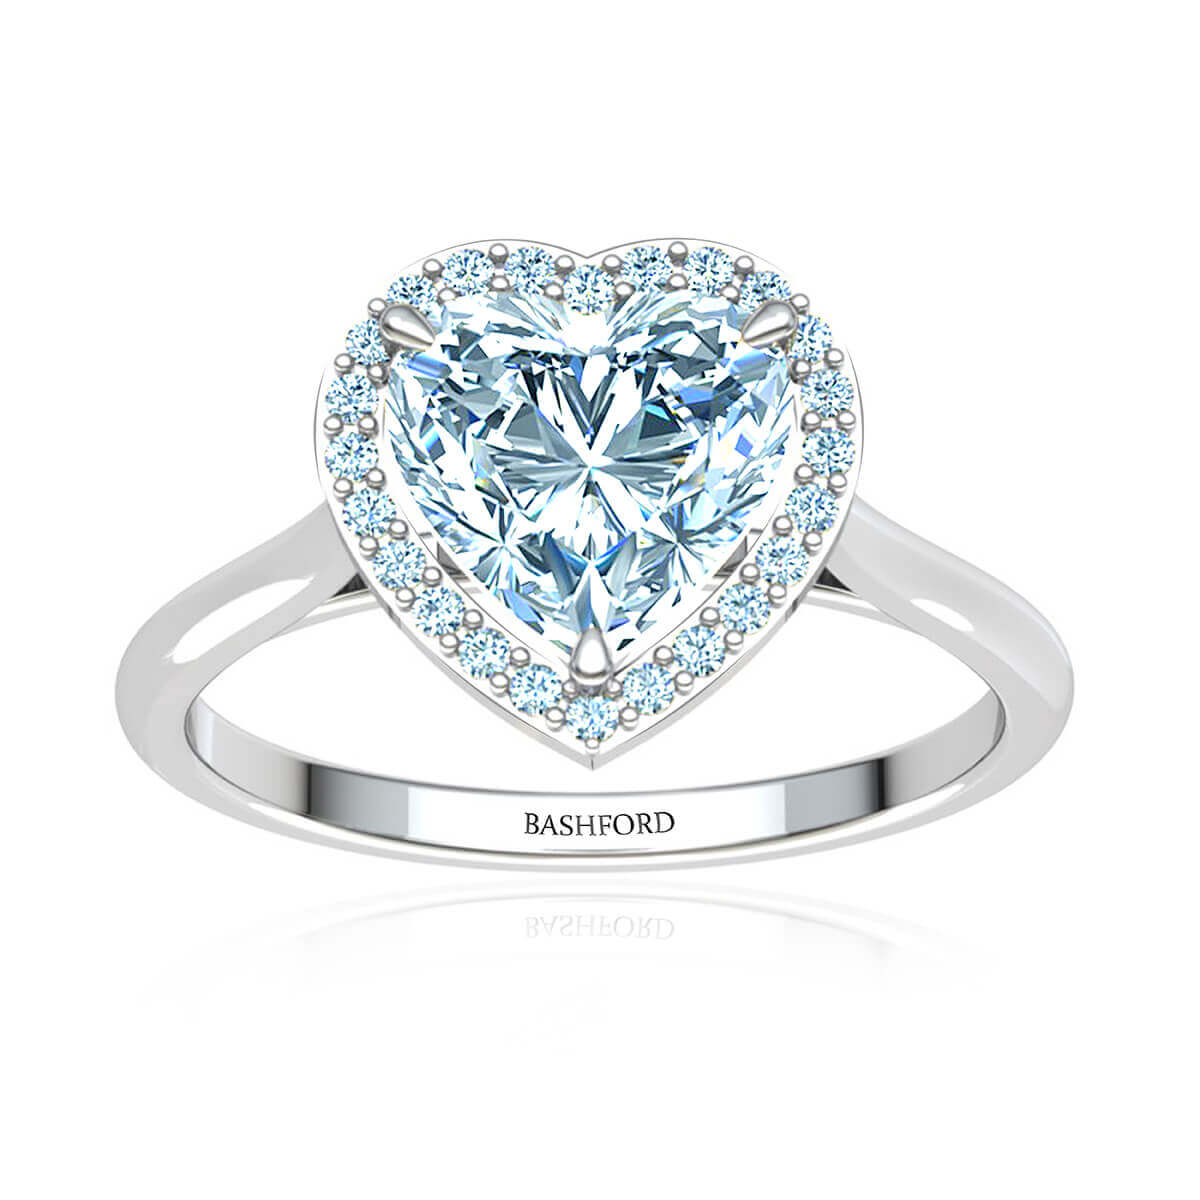 Gaga Diamond Ring  (1/8 CT. TW.)